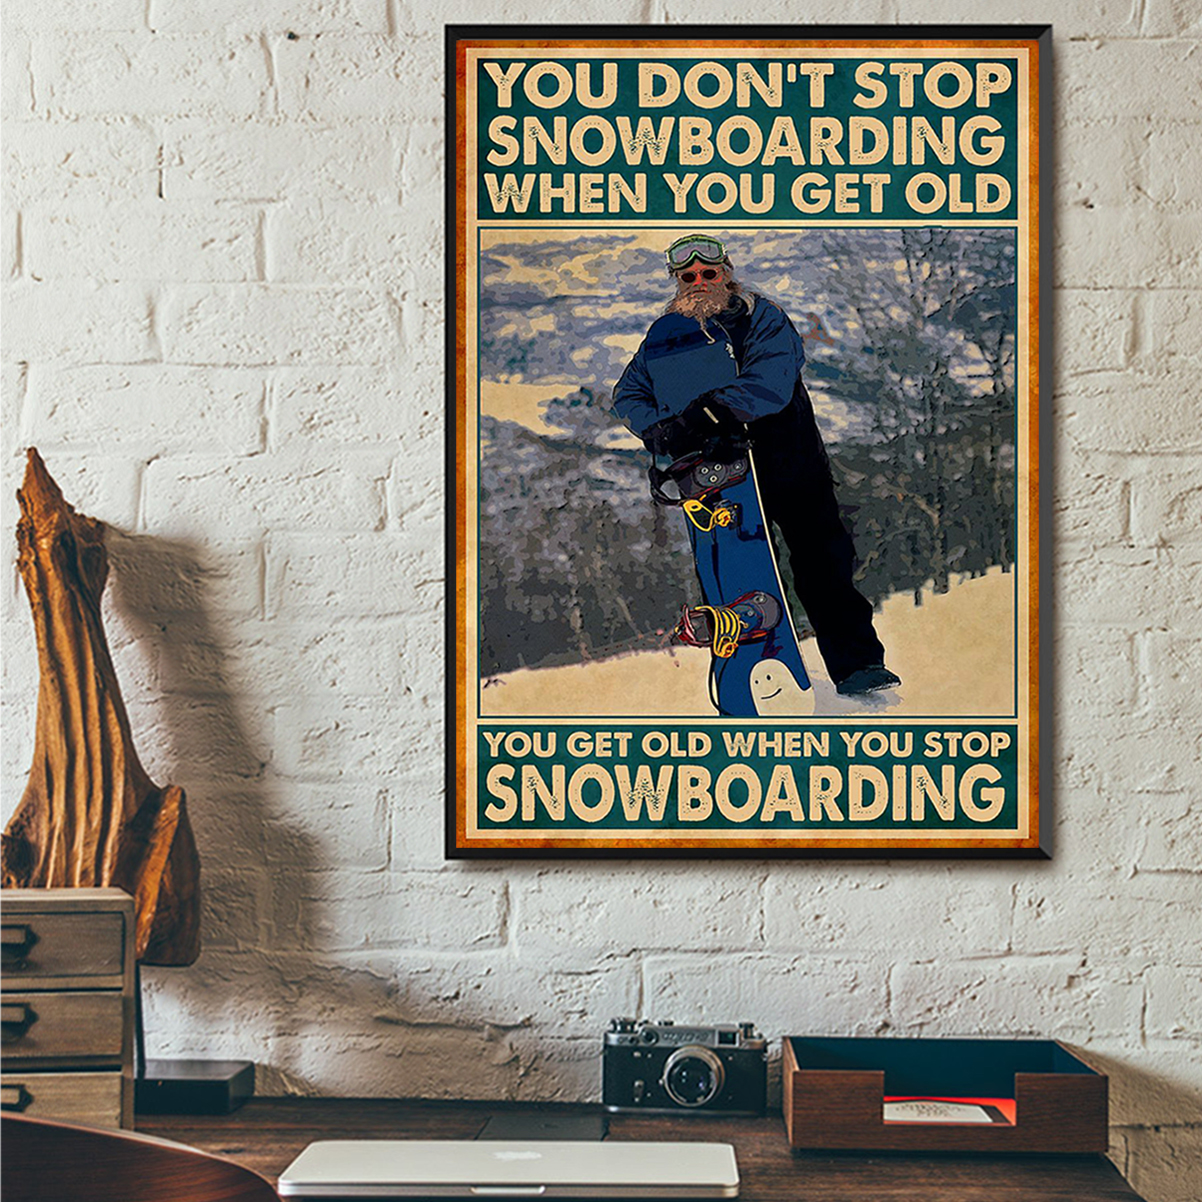 You don't stop snowboarding when you get old poster A3